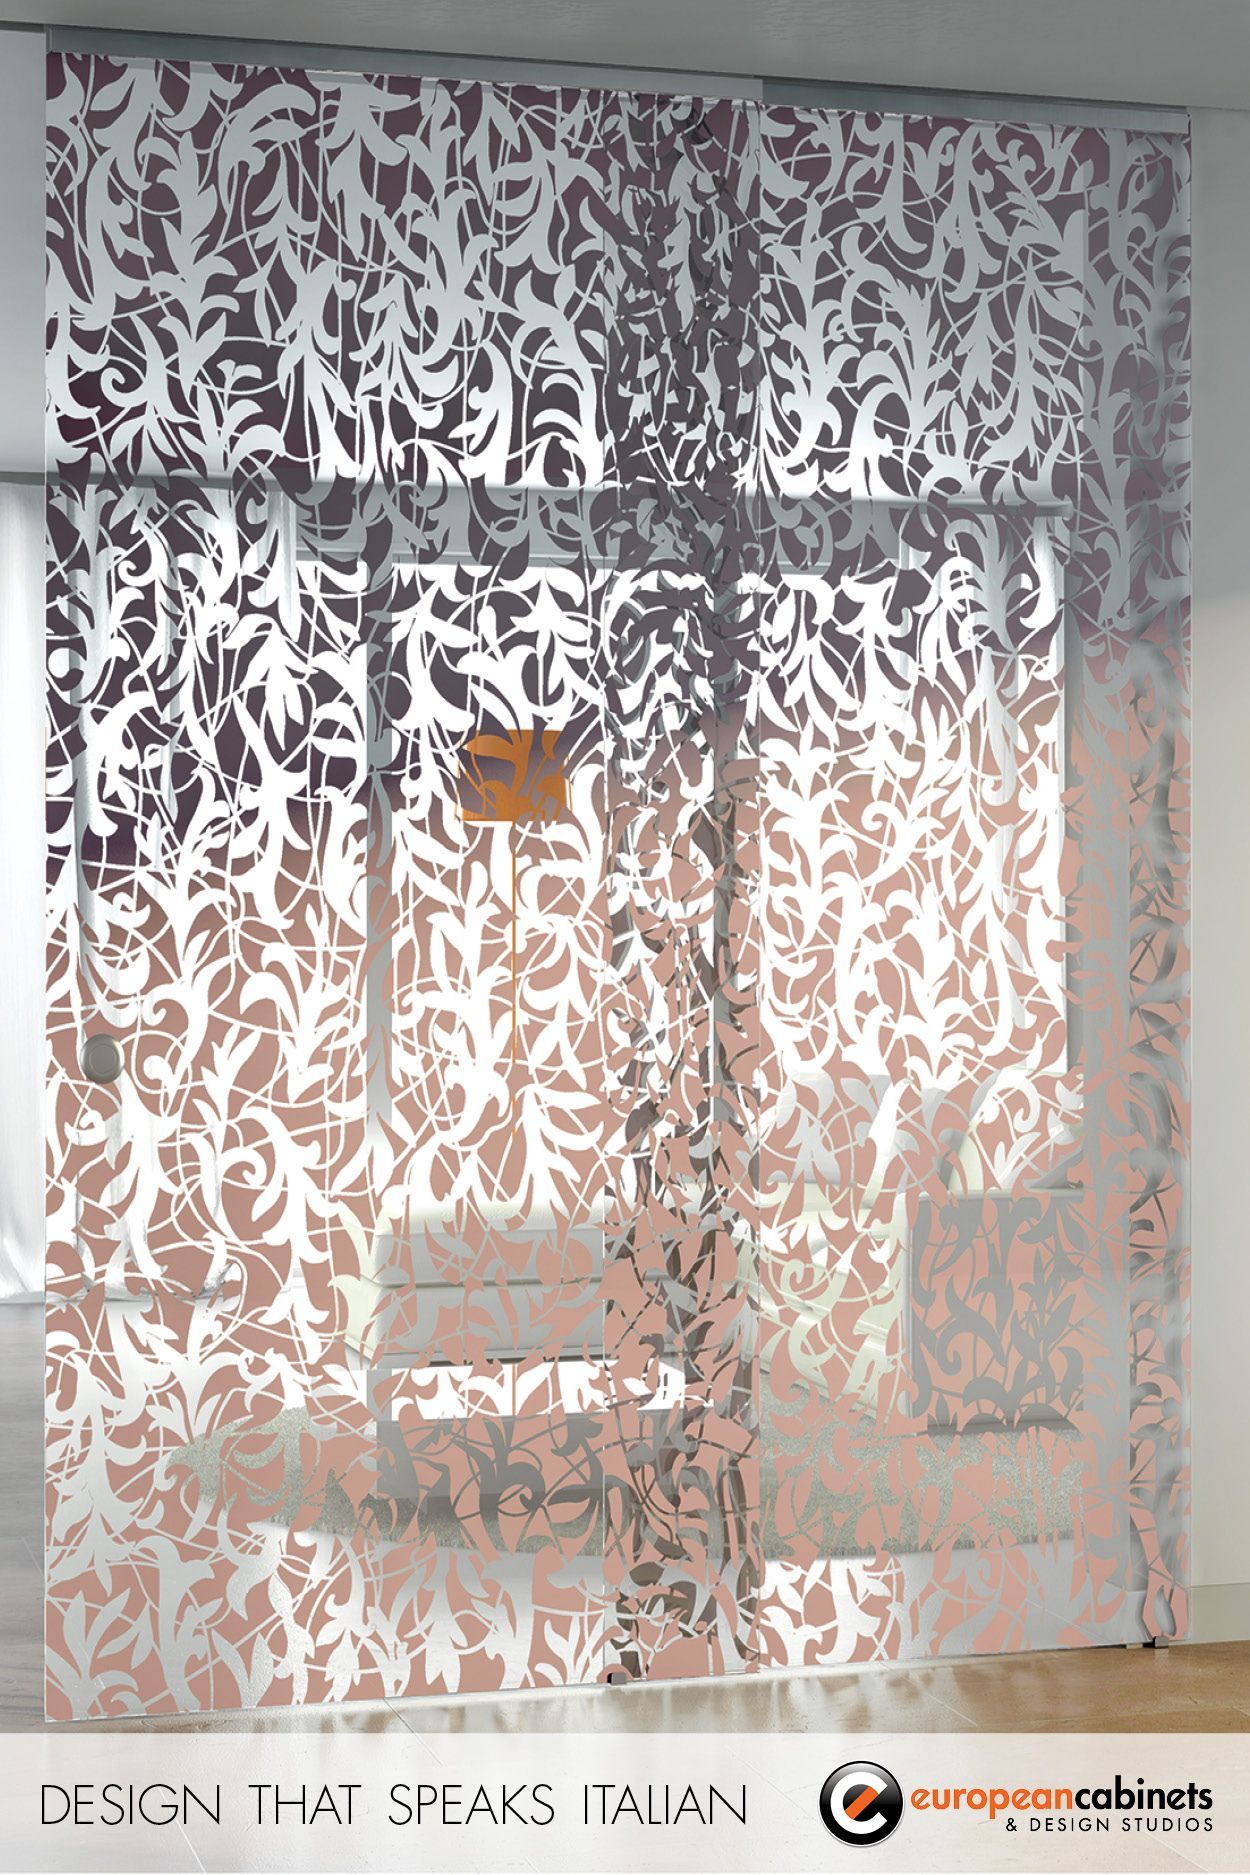 Florita by casali is one of our most popular sliding glass doors perfect for home or office